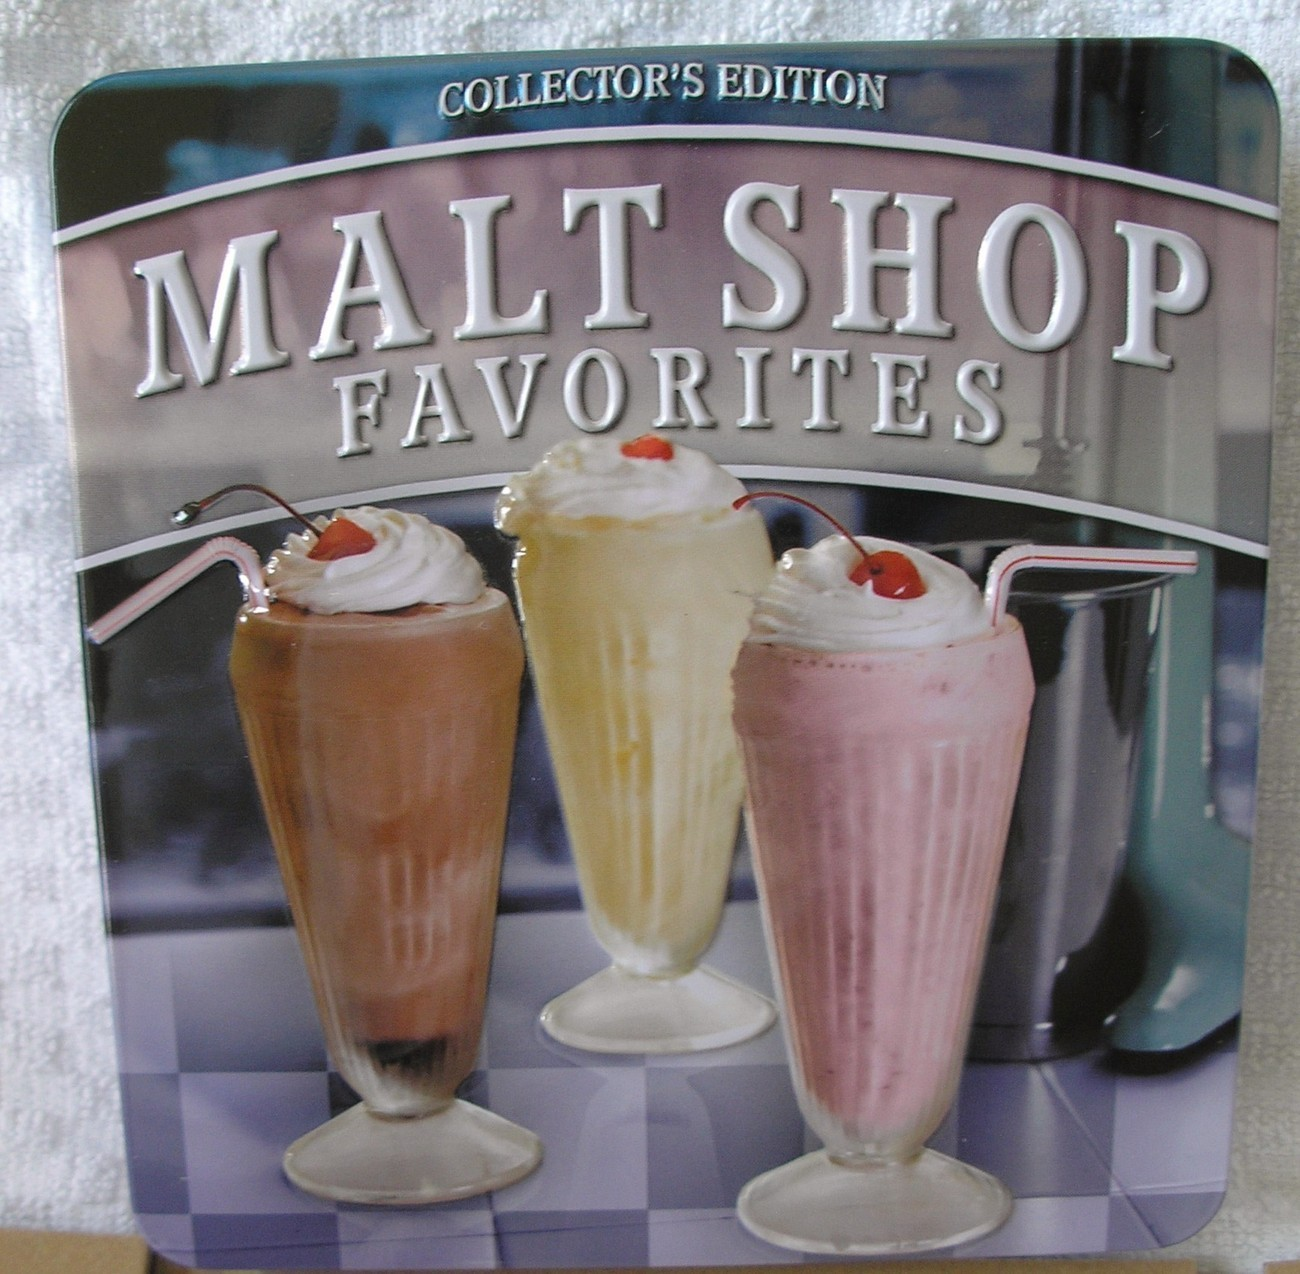 Malt Shop Favorites Collector's Edition CDs -  30 Songs